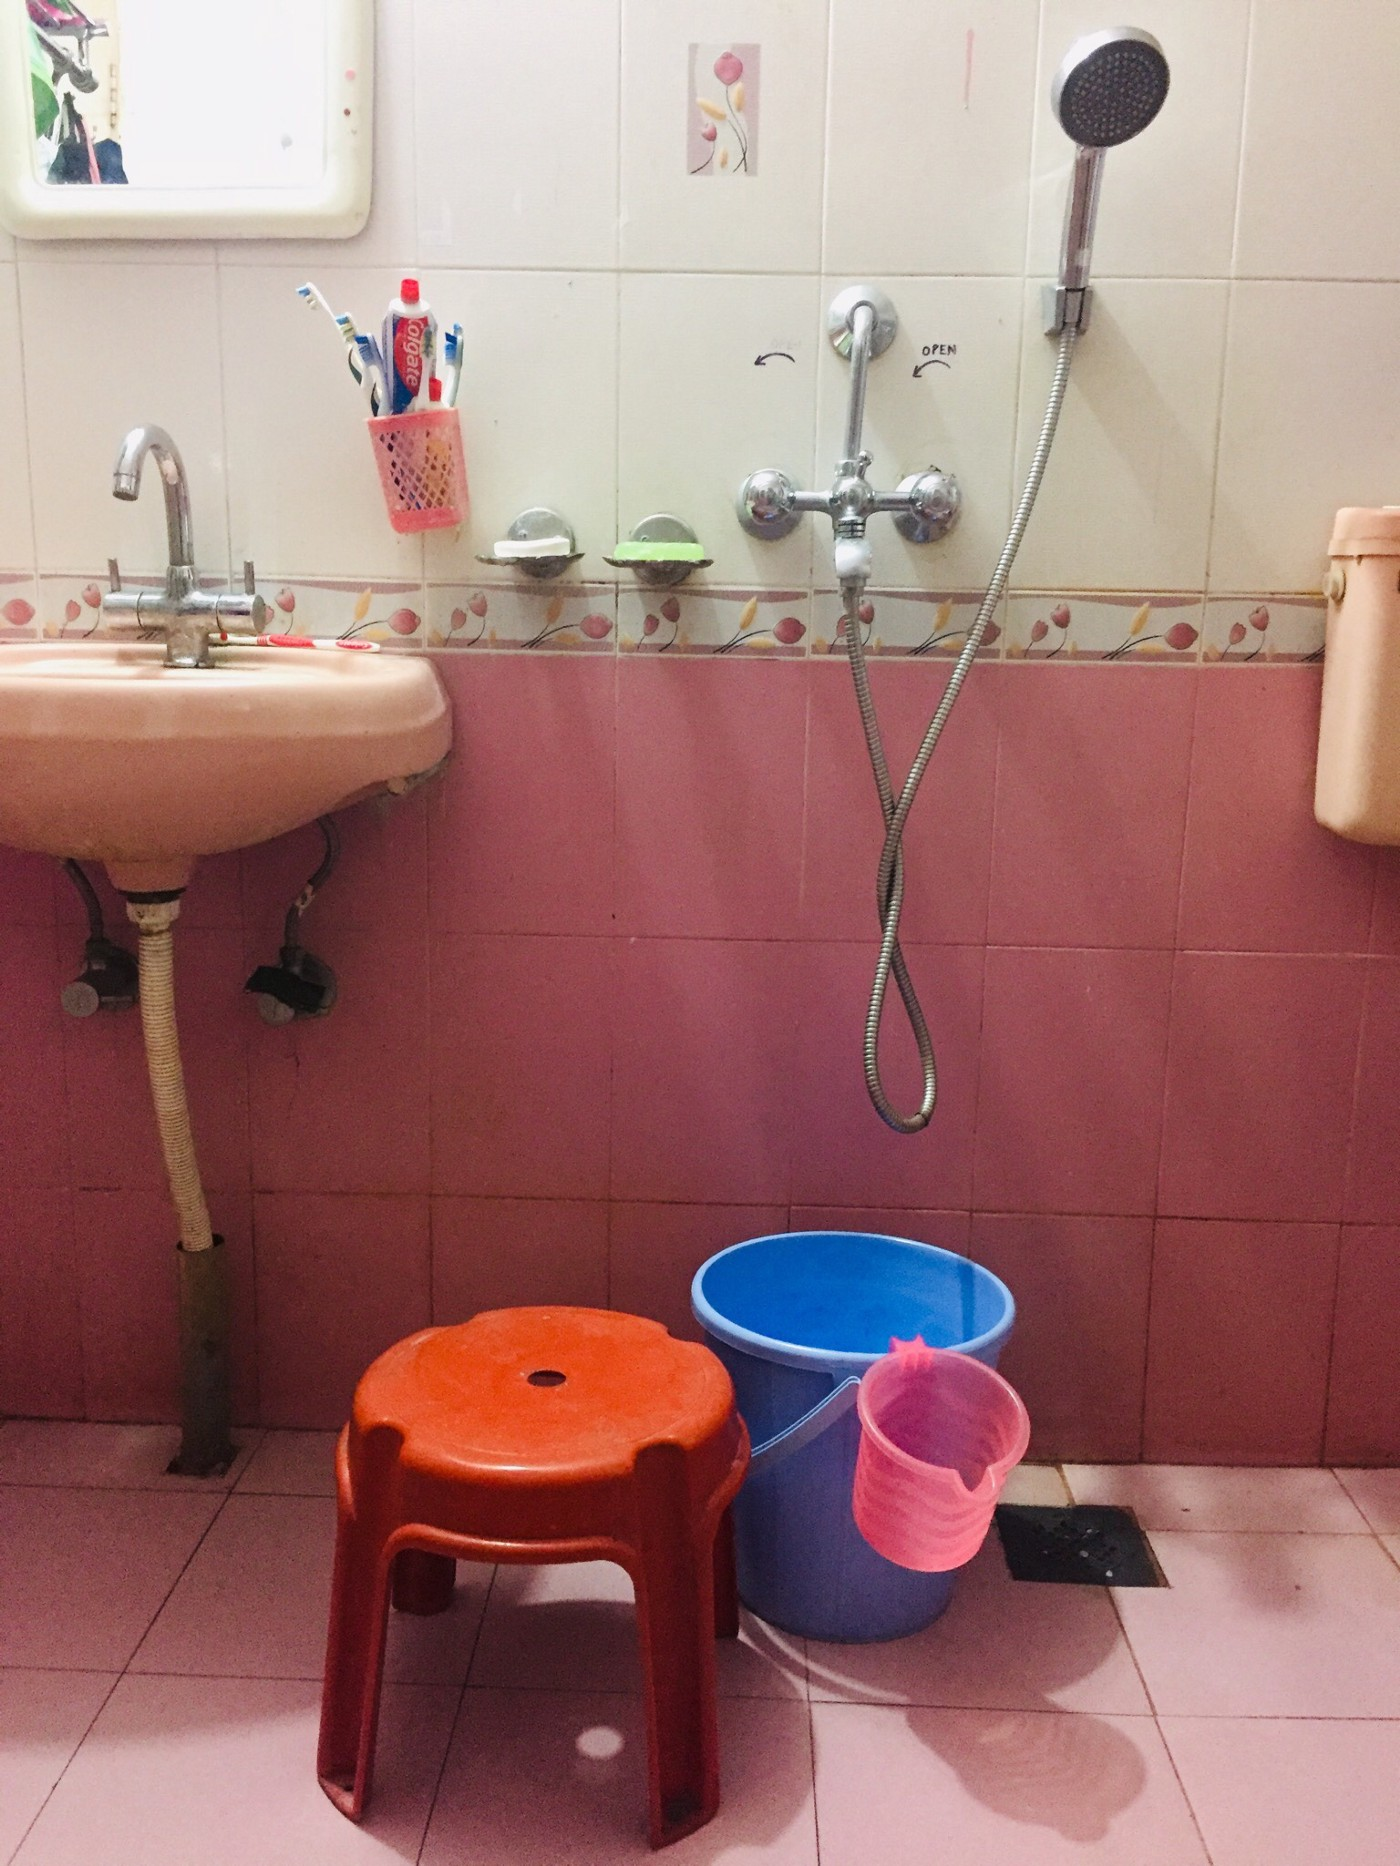 Bucket Baths. They beat bathtubs and showers hollow | by Tooth Truth Roopa  Vikesh | The Haven | Medium